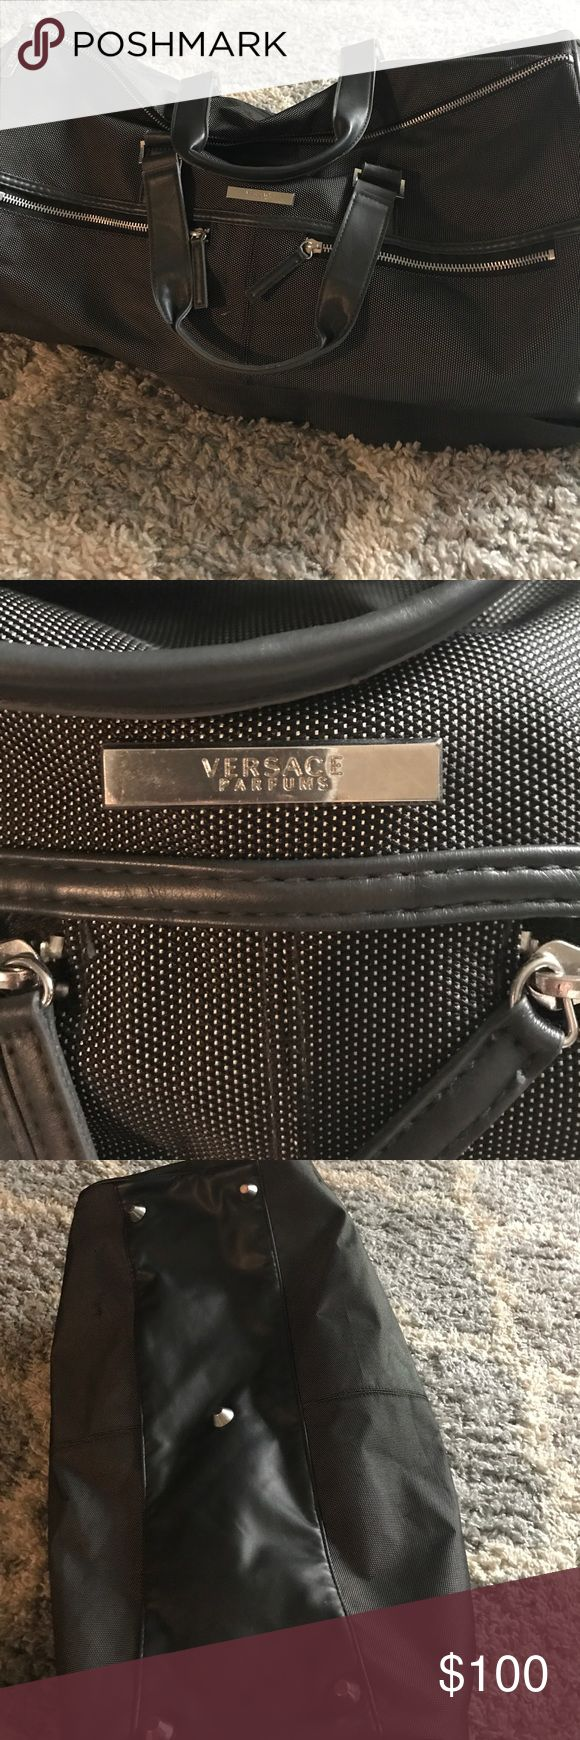 Versace Duffle bag Authentic Versace Duffle Bag.  Great quality Bags